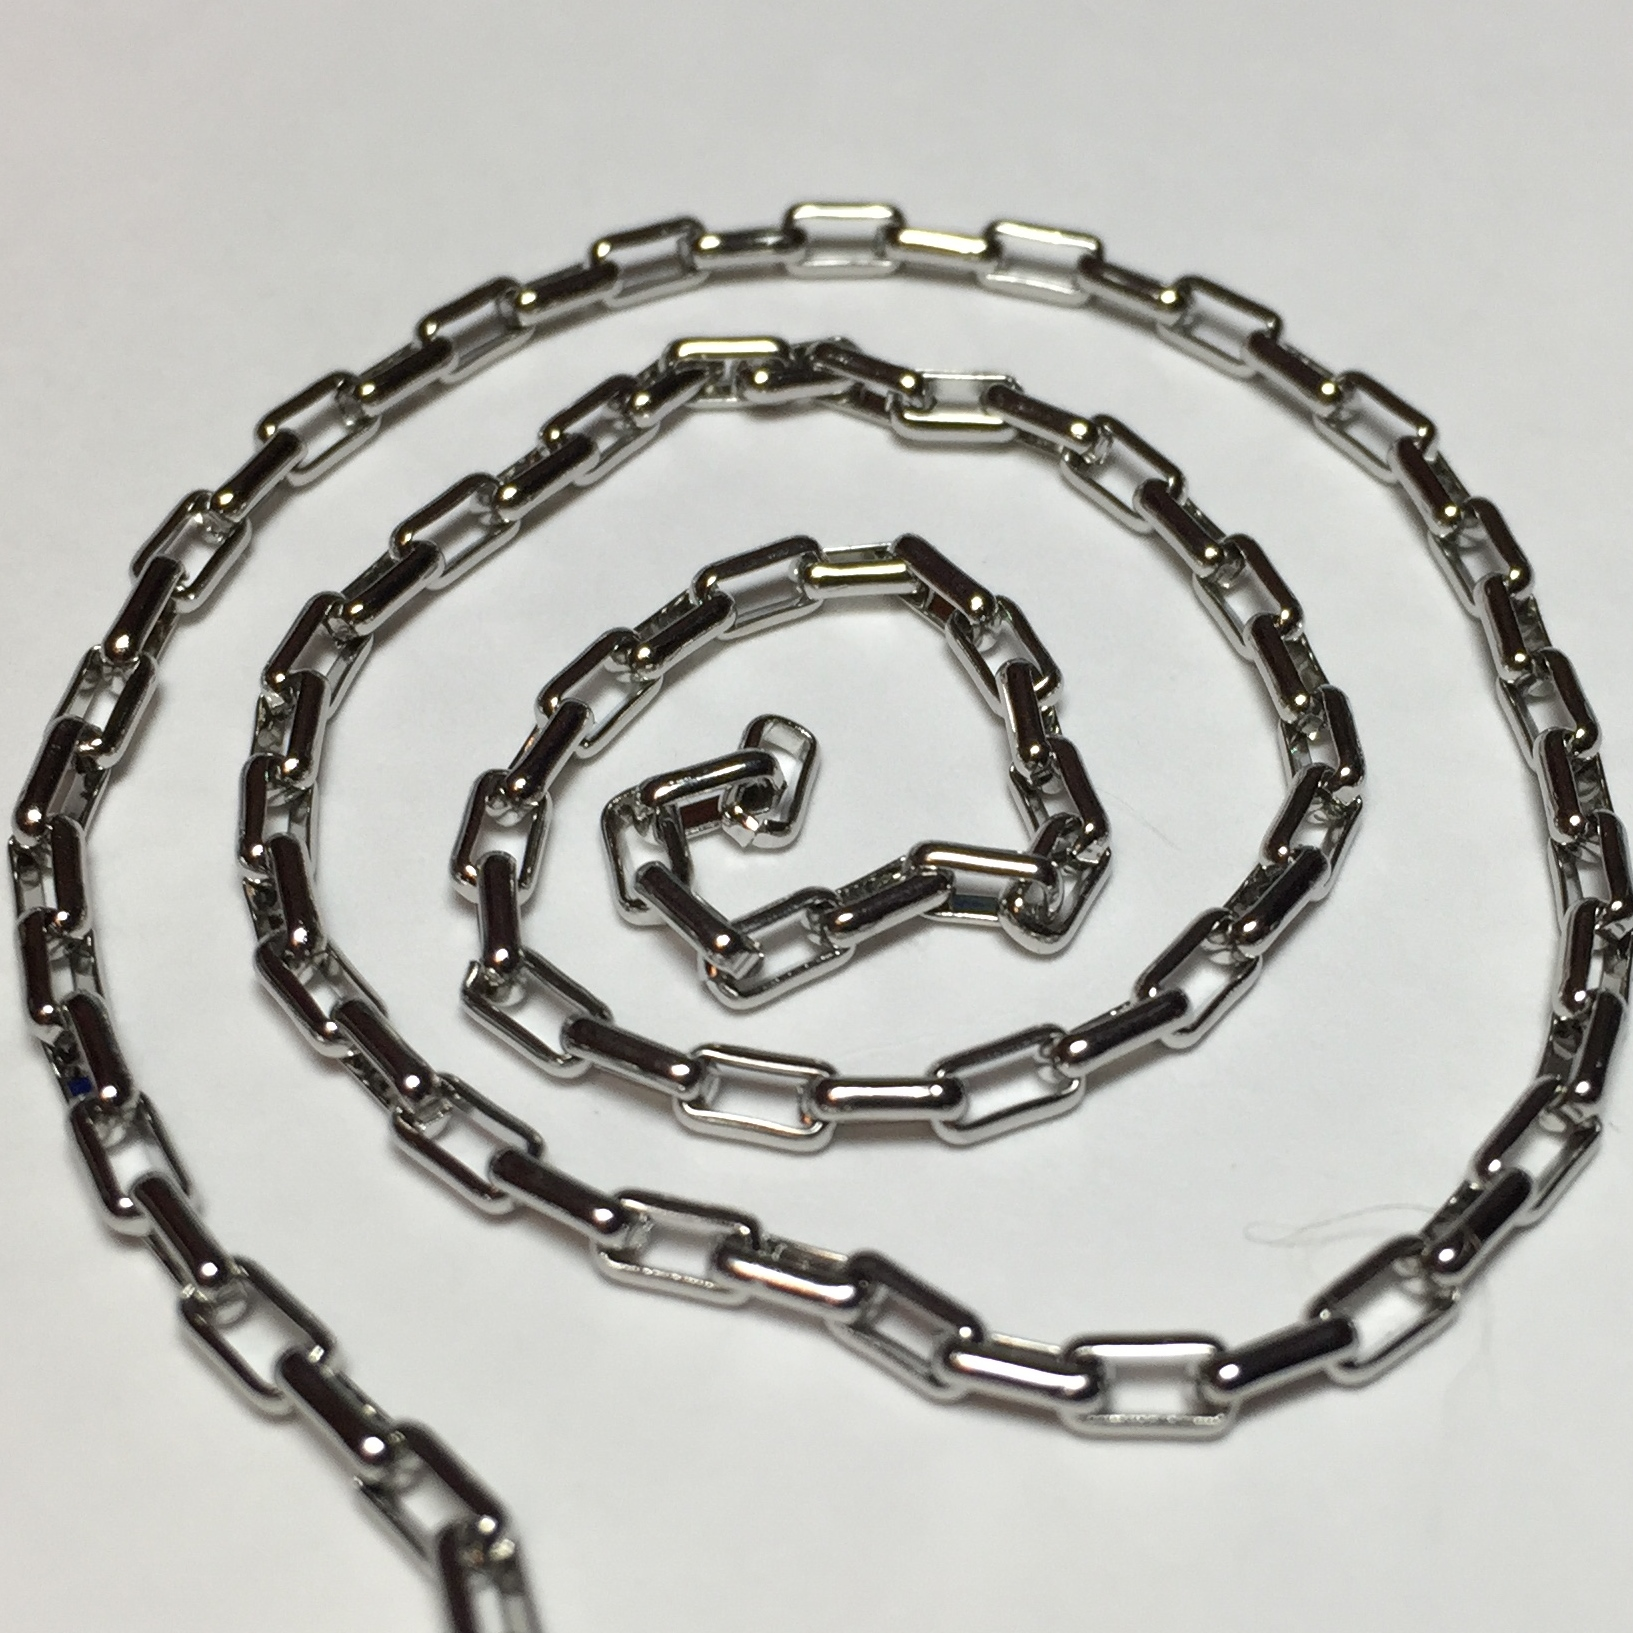 Stainless Steel Chain Rectangle Chain Per Foot